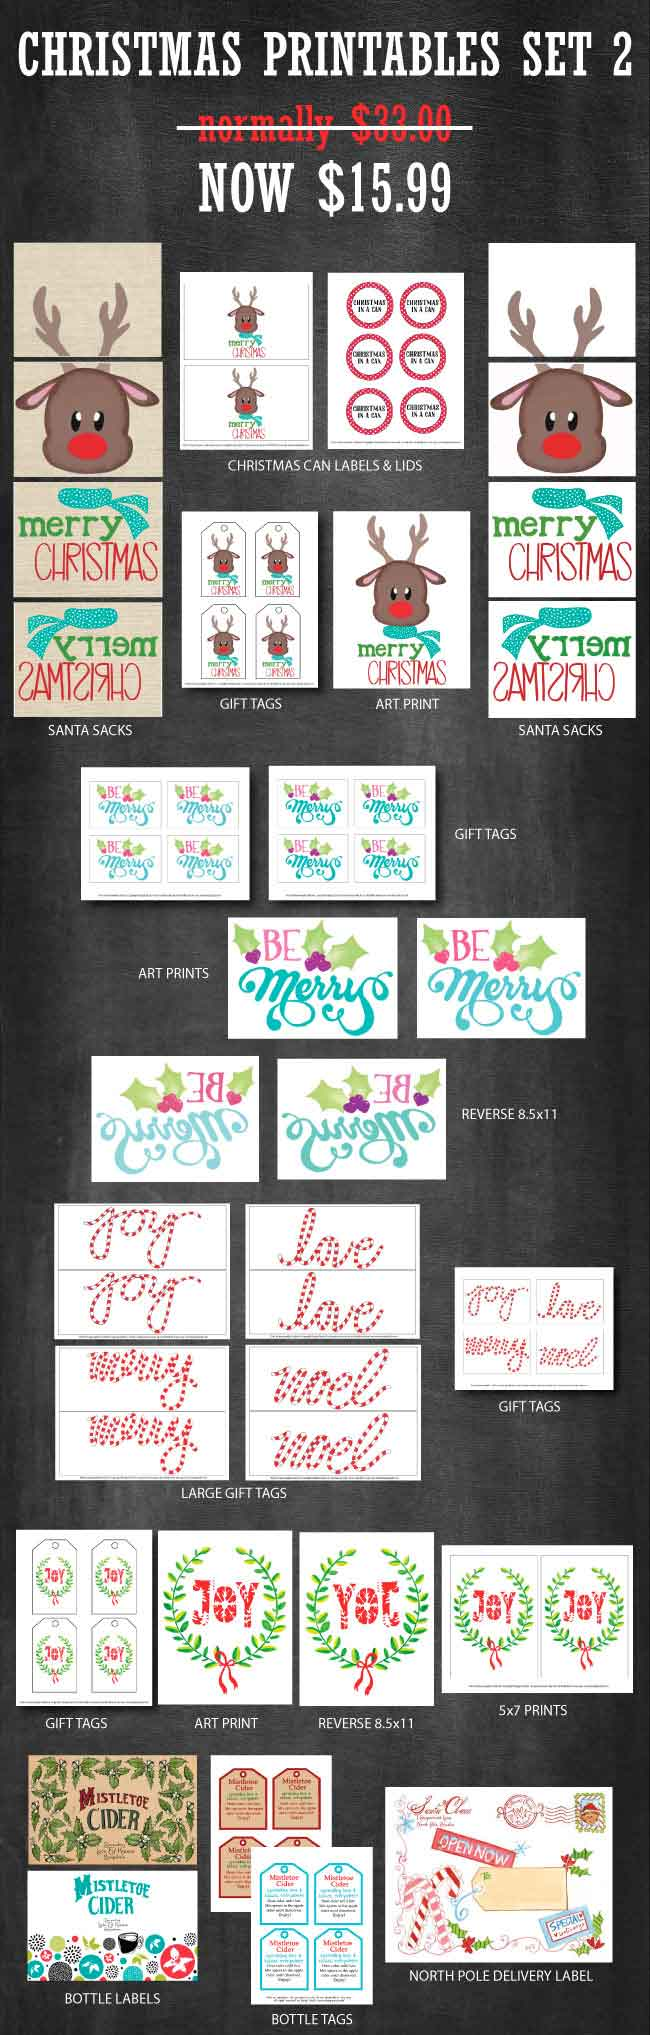 Christmas Printables Set available at www.designdazzle.com